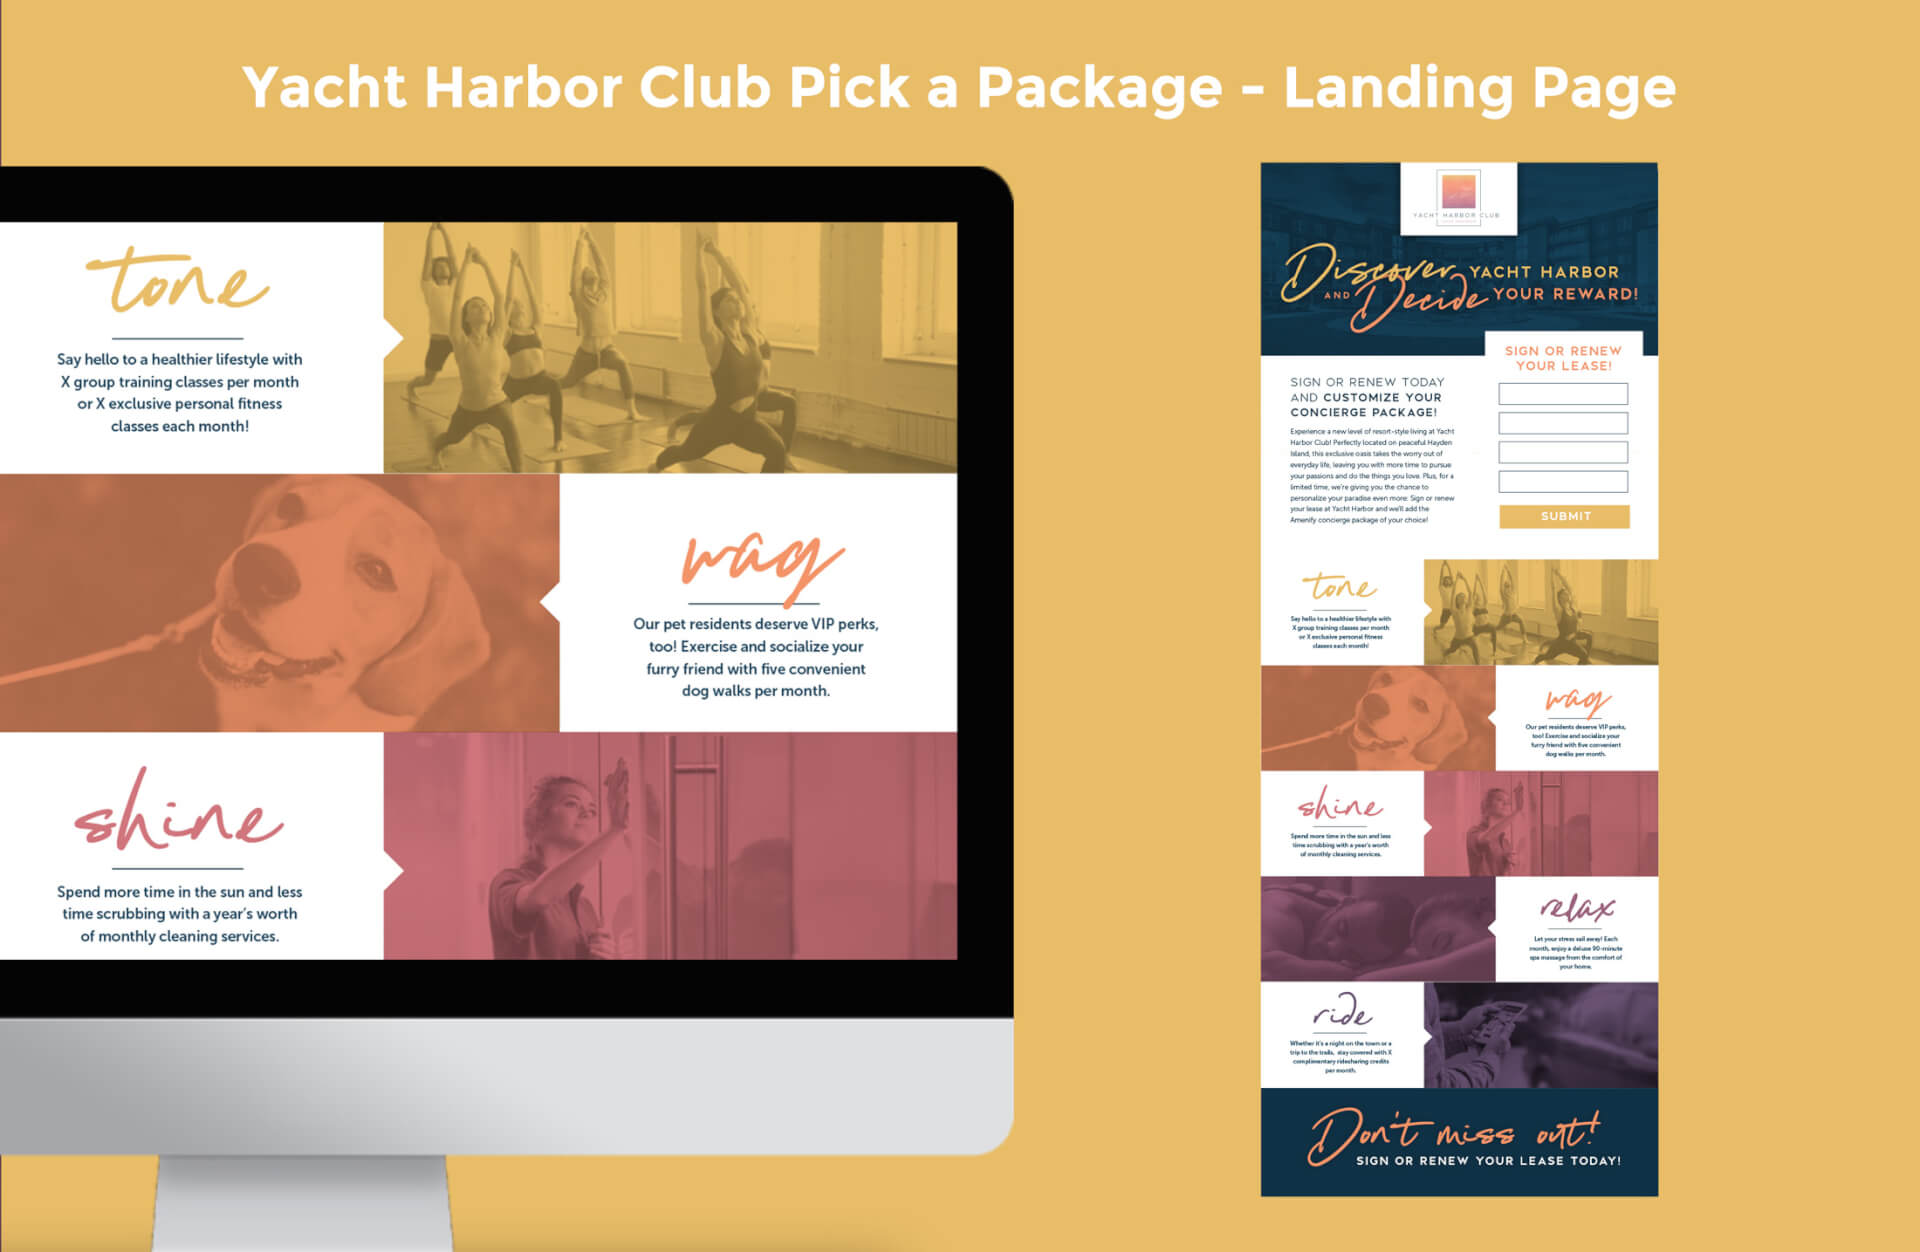 Yacht Harbor Club's Pick a Package Landing Page